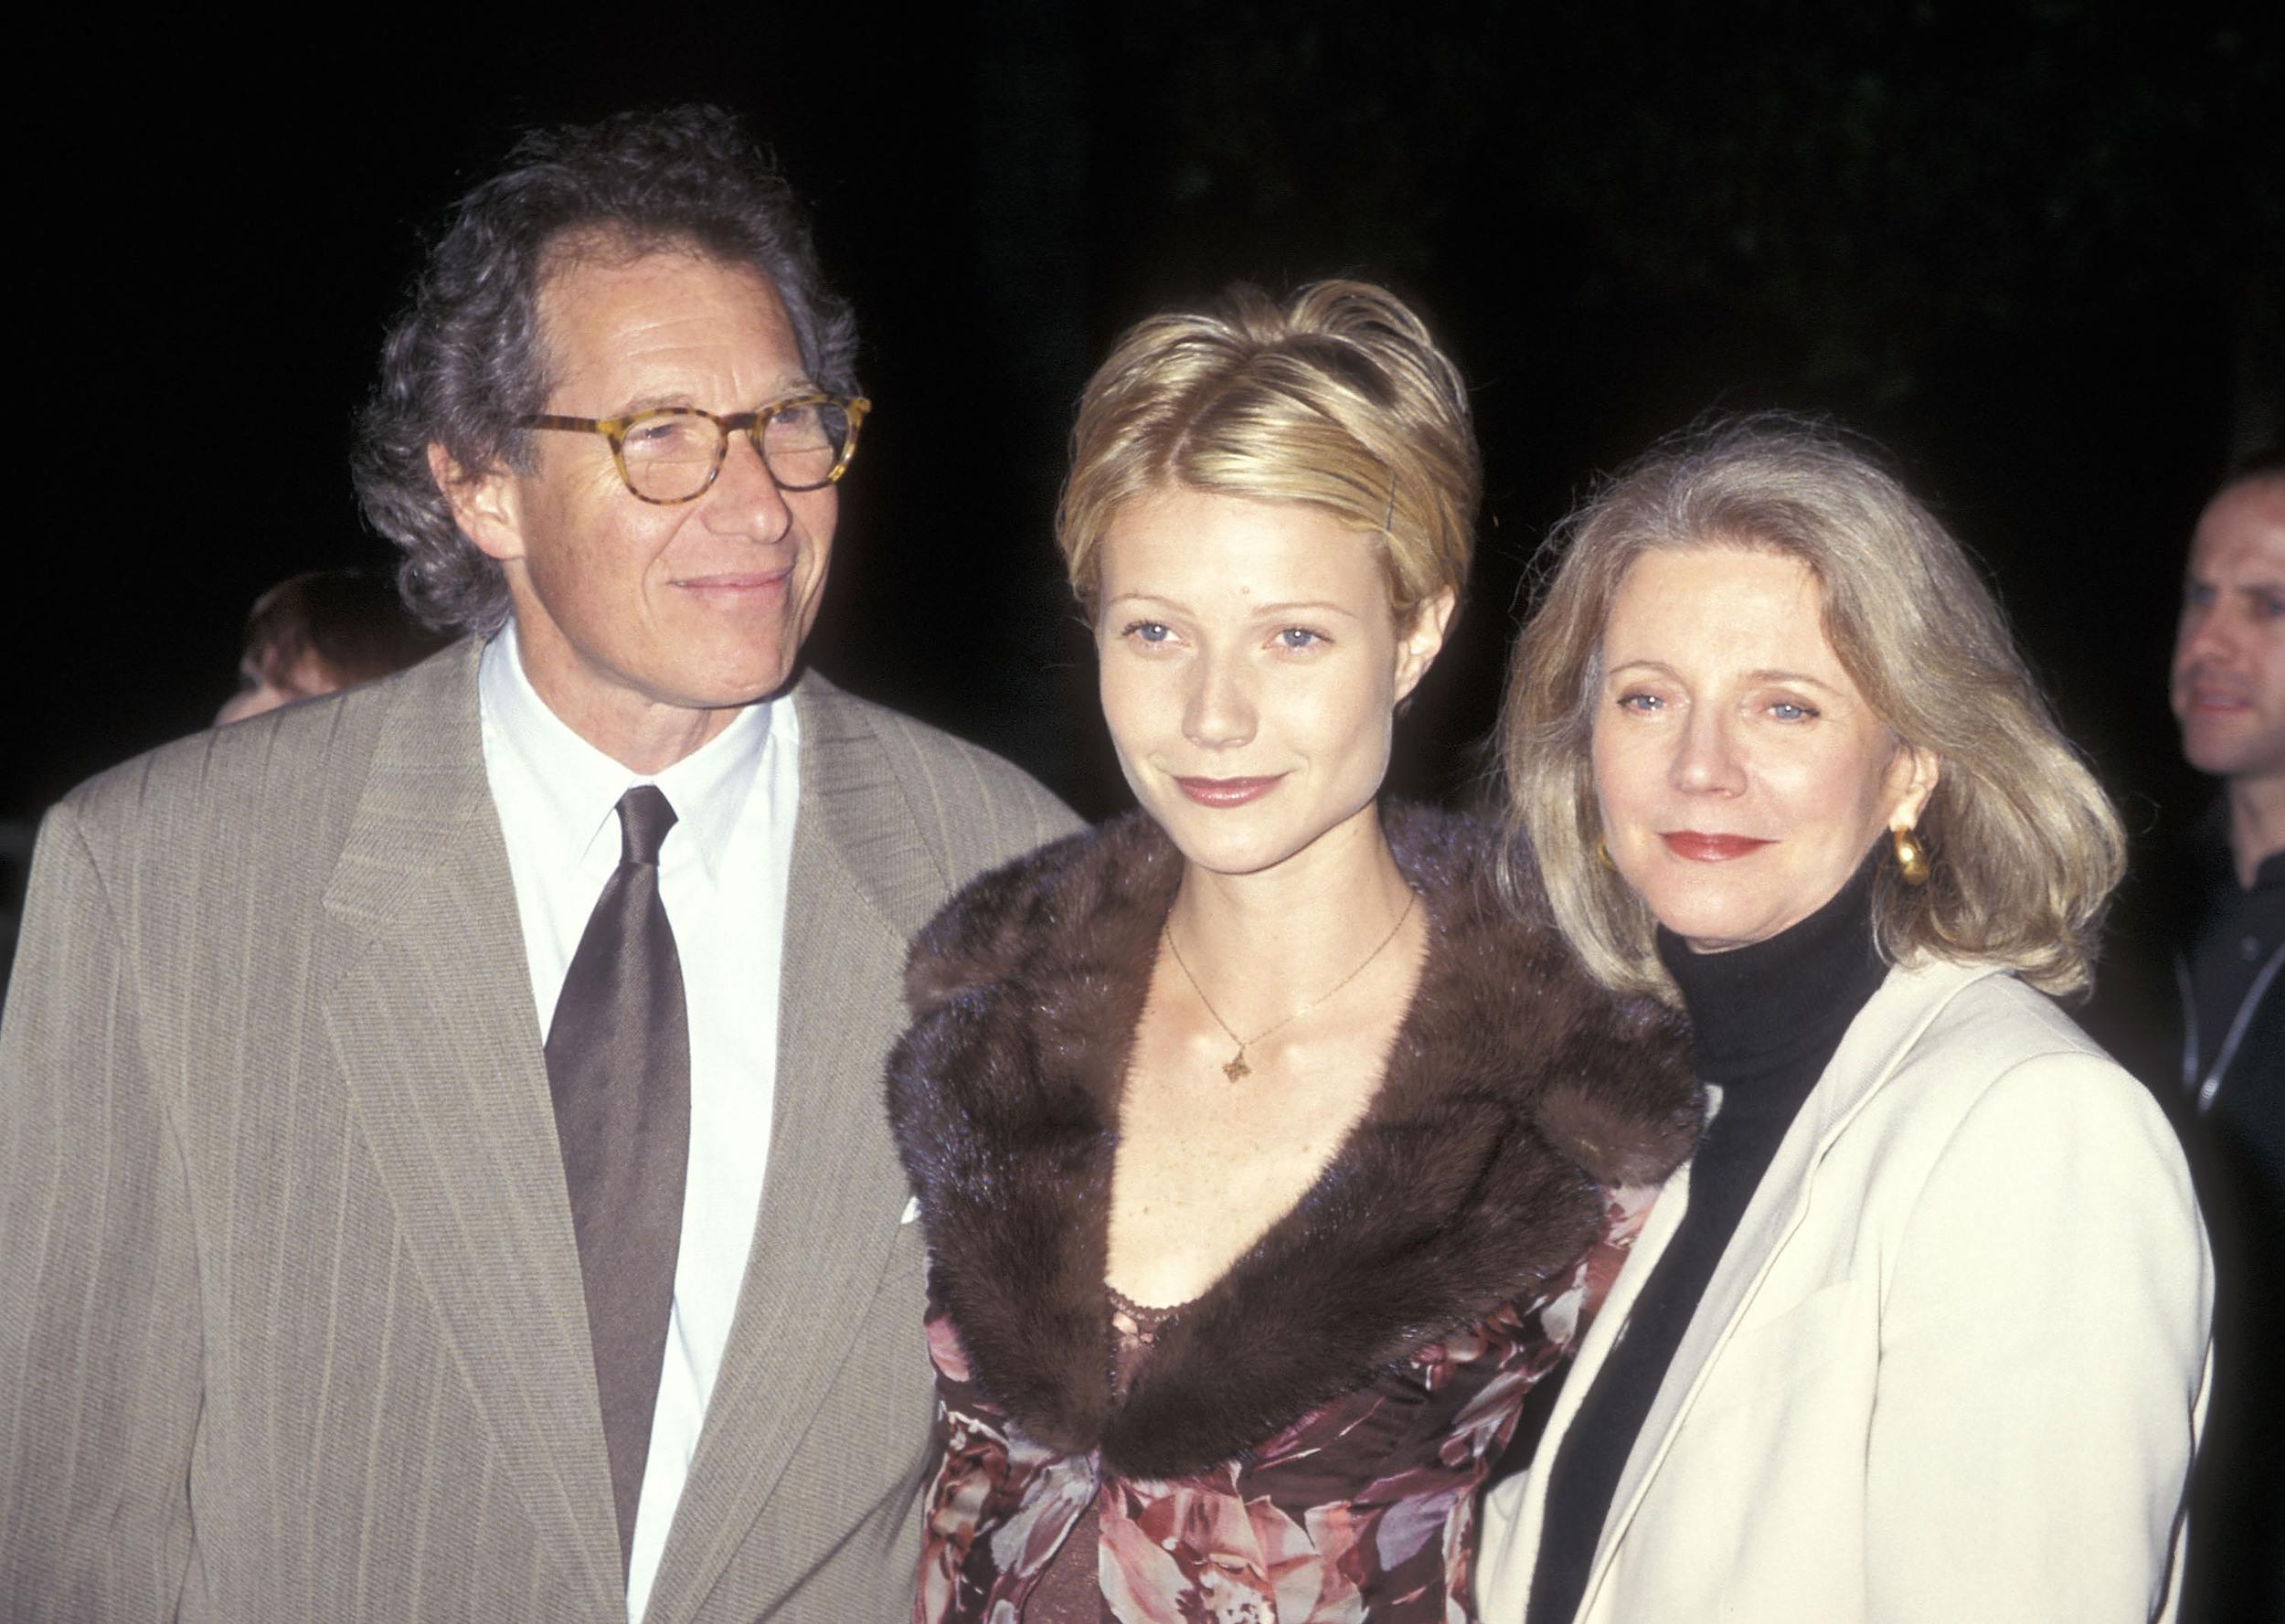 Producer Bruce Paltrow, actress Gwyneth Paltrow and actress Blythe Danner attend the 'Hard Eight' Hollywood Premiere on February 23, 1997 at Paramount Theatre in Hollywood, California. (Photo by Ron Galella, Ltd./WireImage)